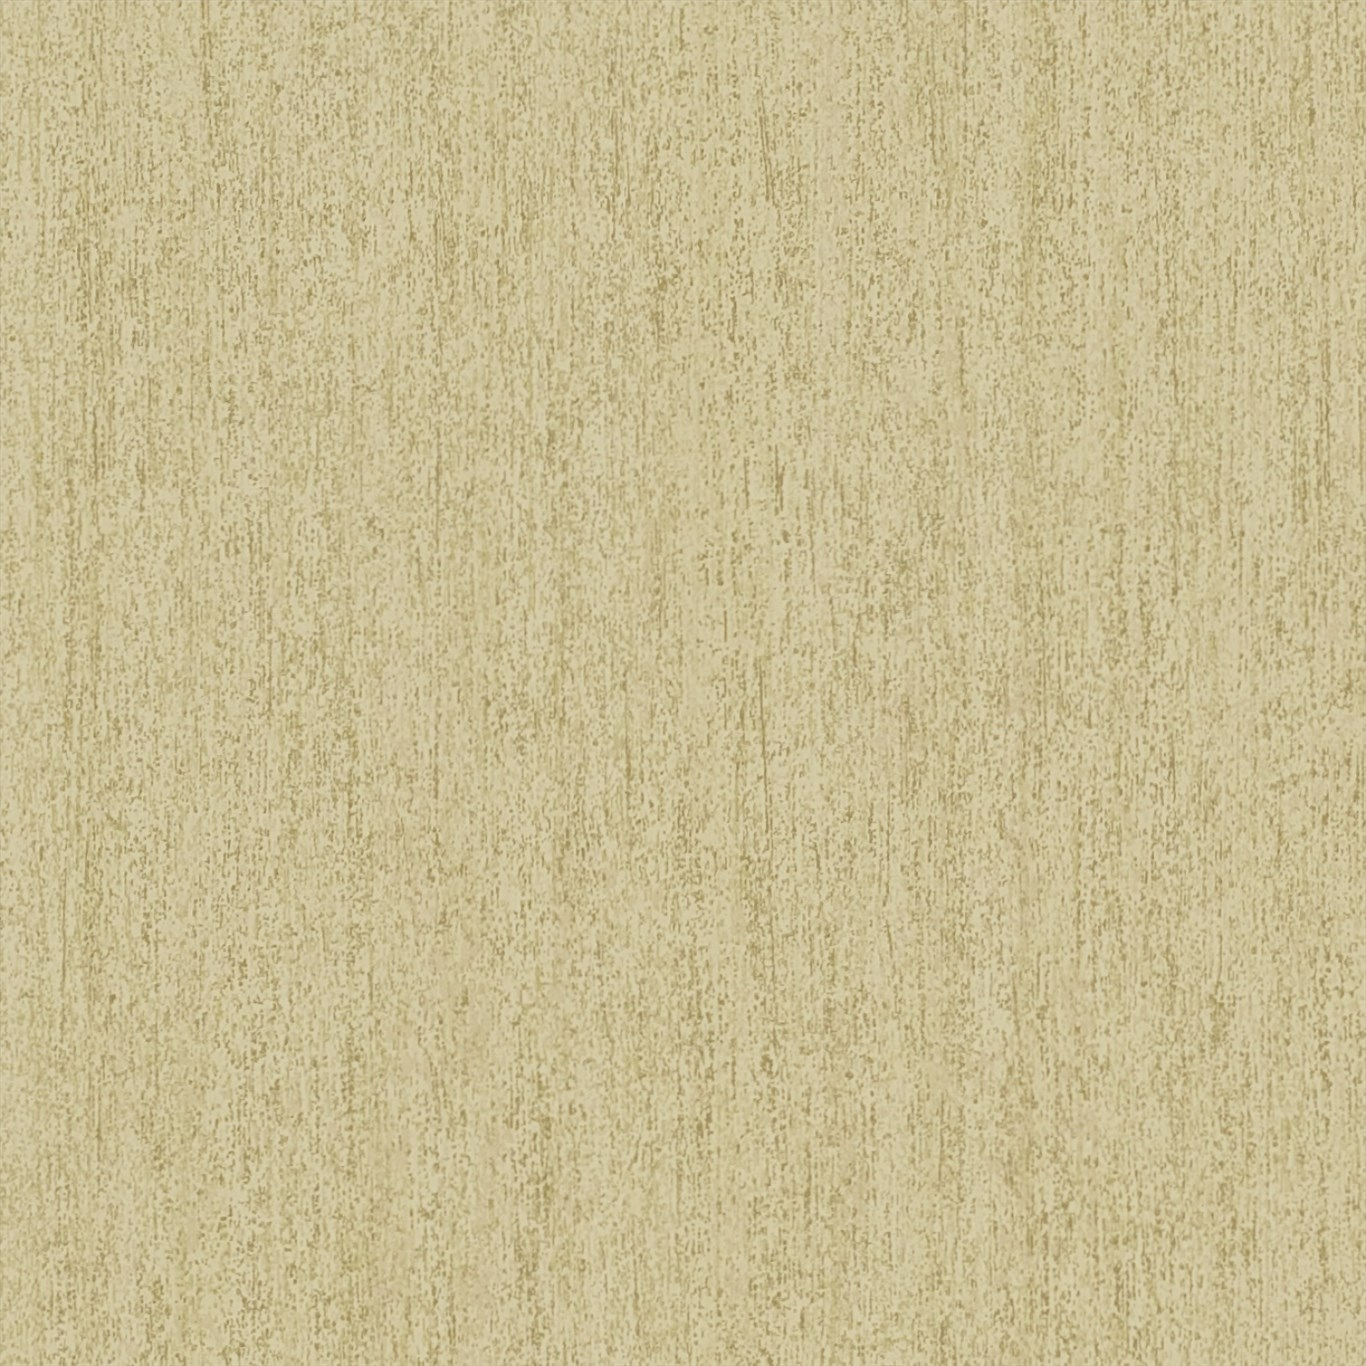 Antique Plain 311736